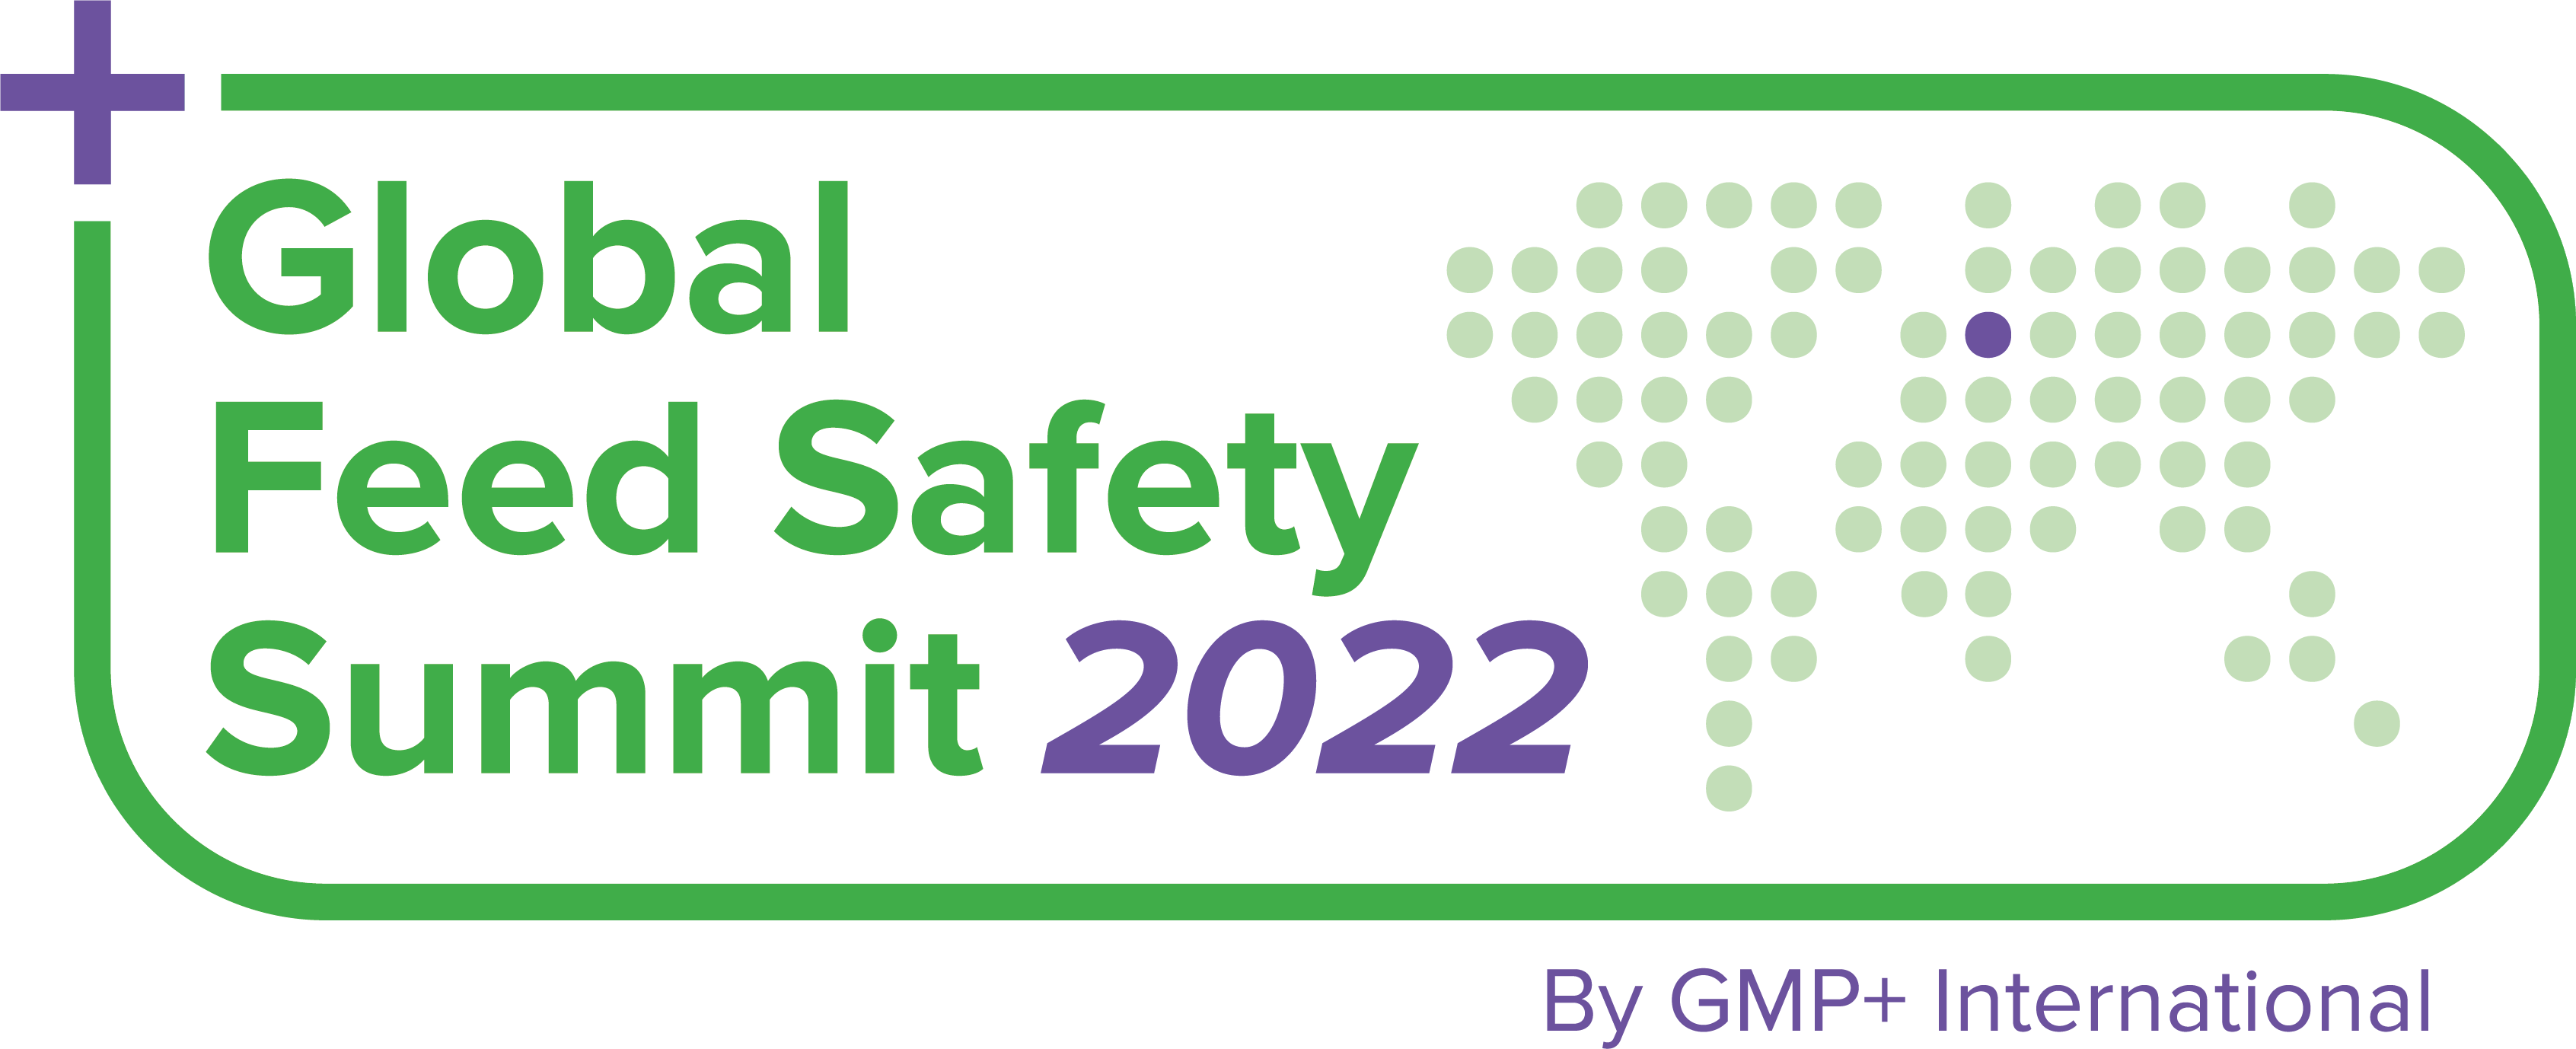 Global Feed Safety Summit